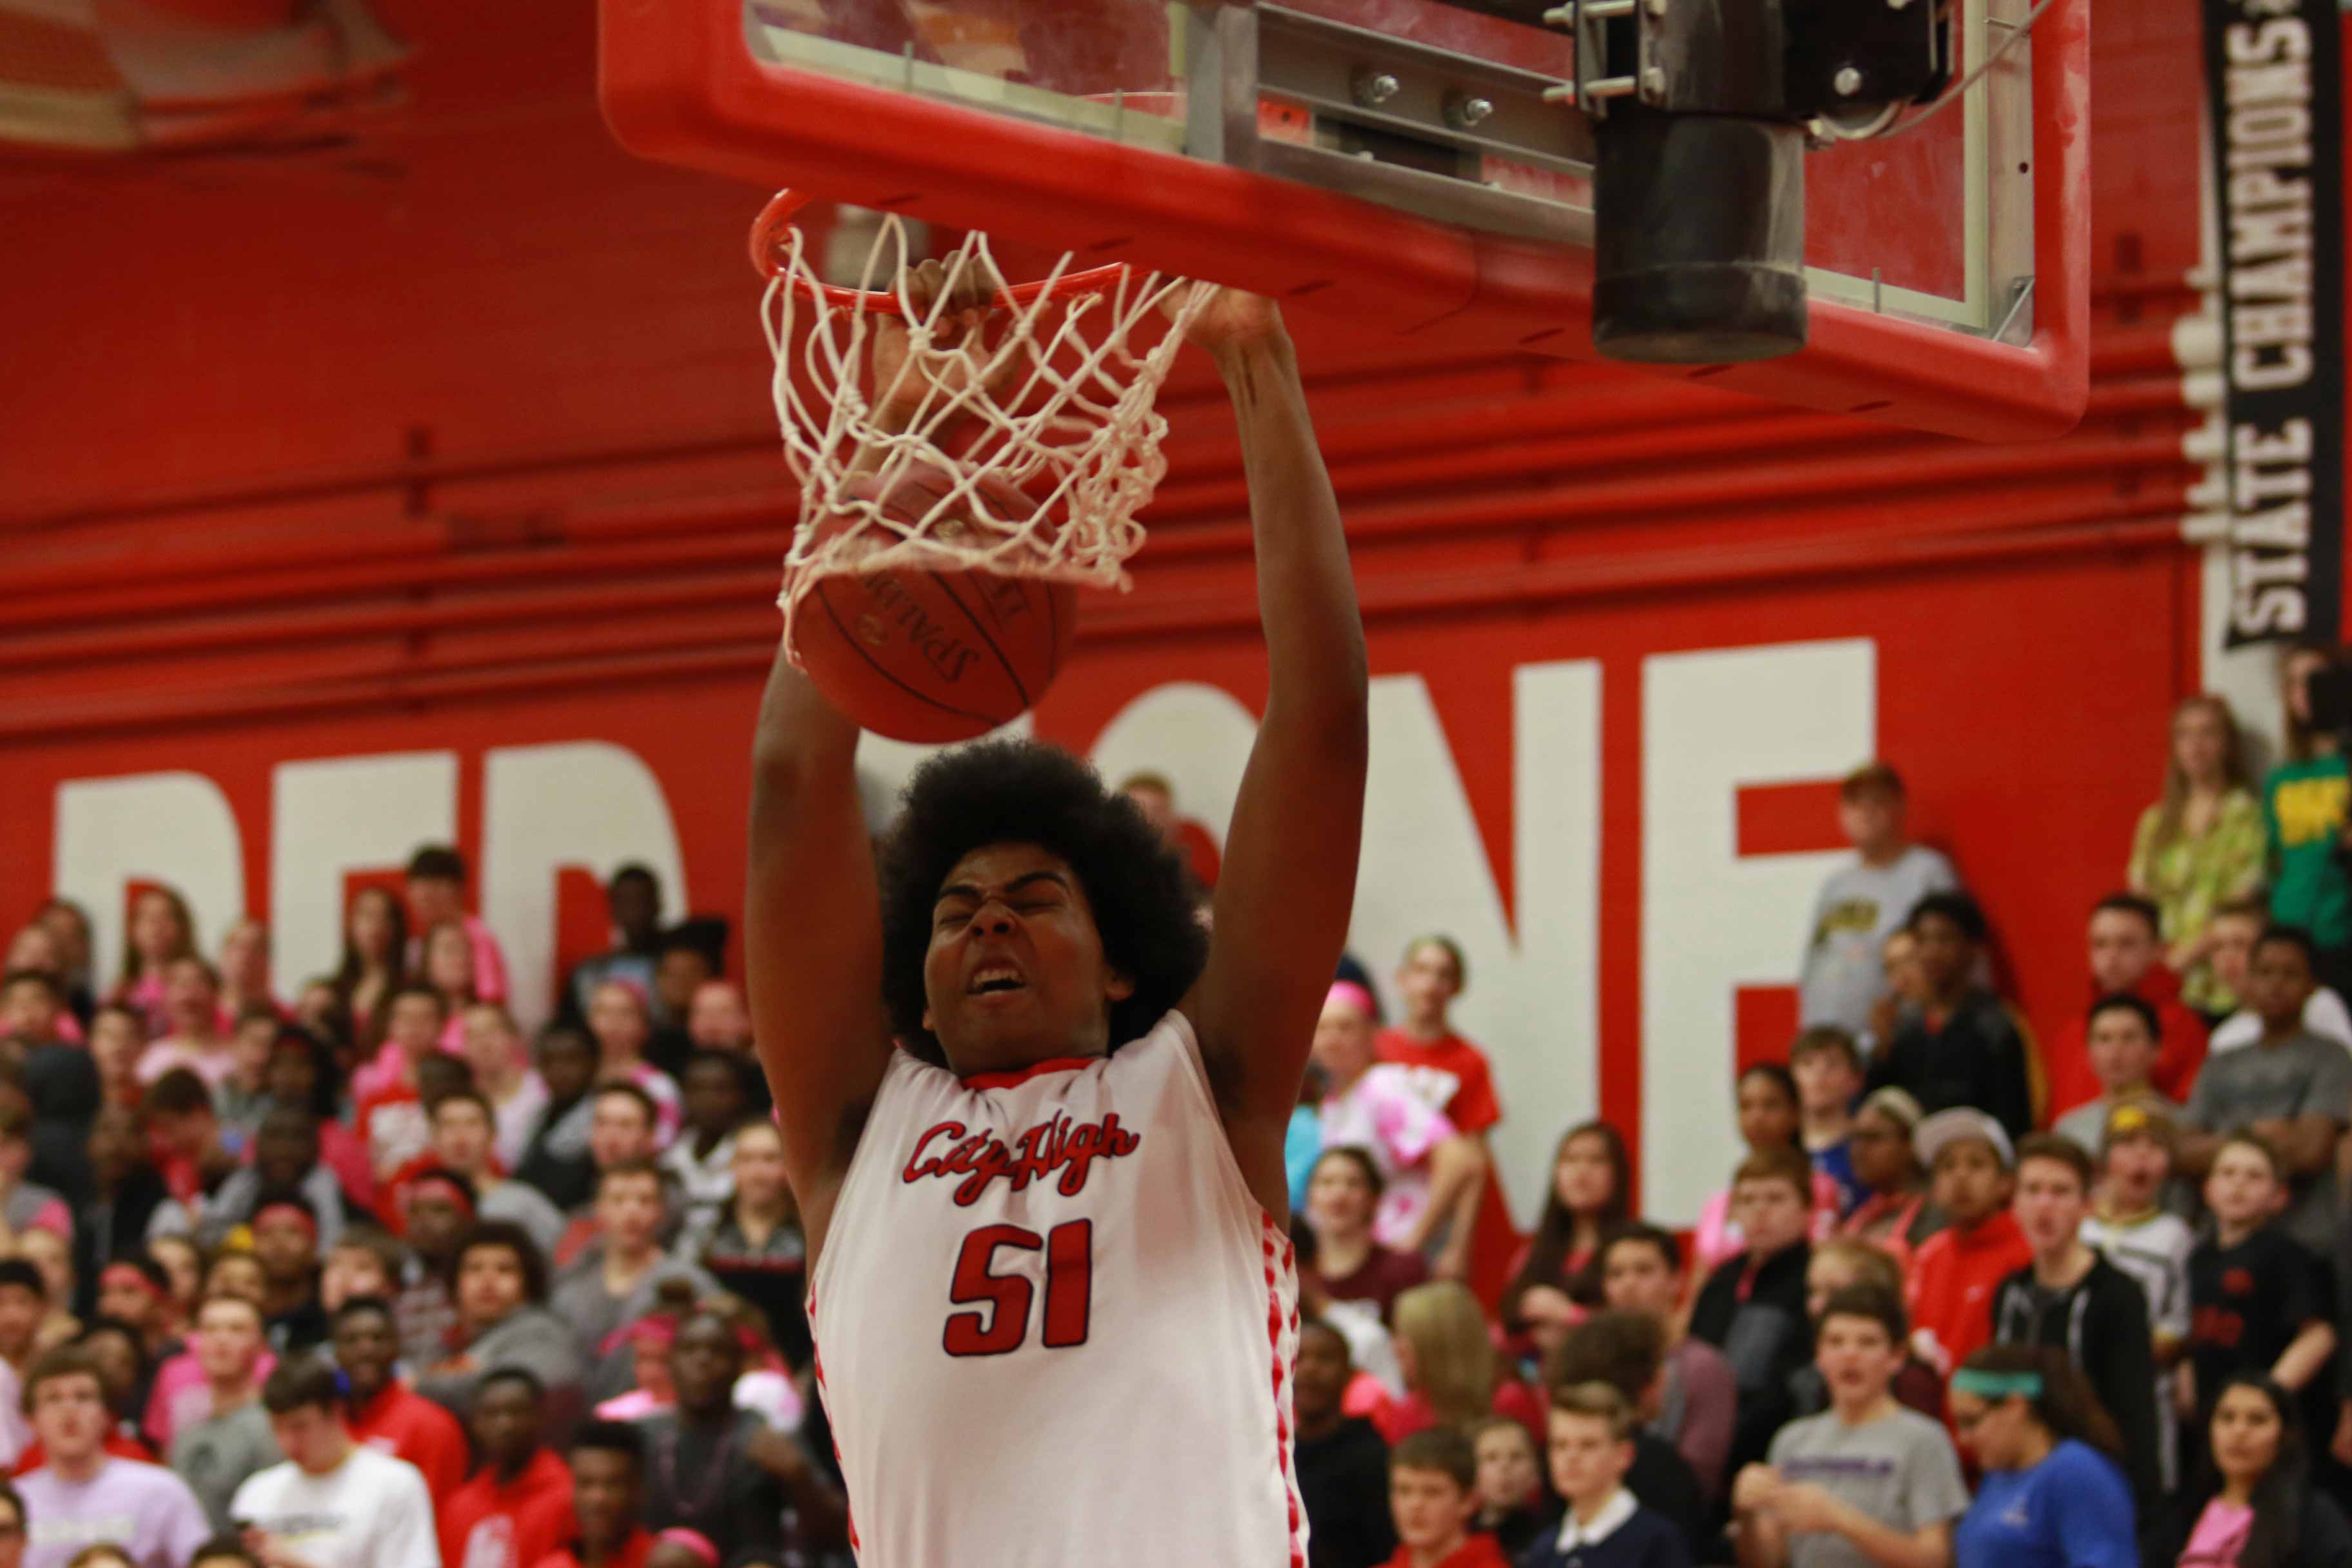 Micah+Martin+%2716+showed+off+his+dunking+ability+on+Friday%2C+February+12th%2C+2016+during+the+Little+Hawks%27+game+against+West+High.+